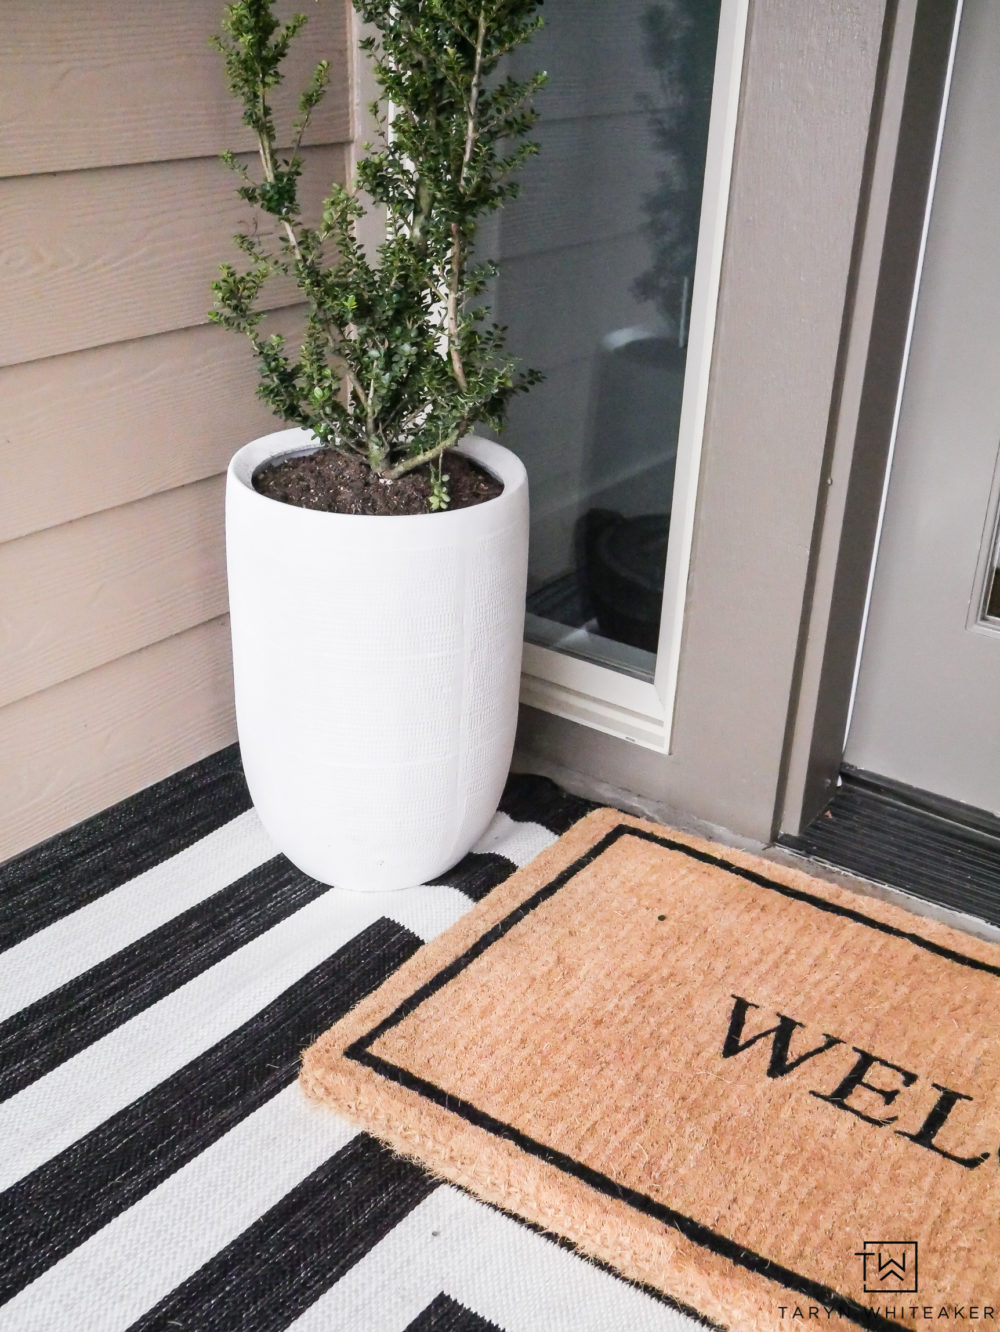 Click to get this Modern Spring Porch Decor look in your own home! The large white planters and layered rugs are simple yet impactful.